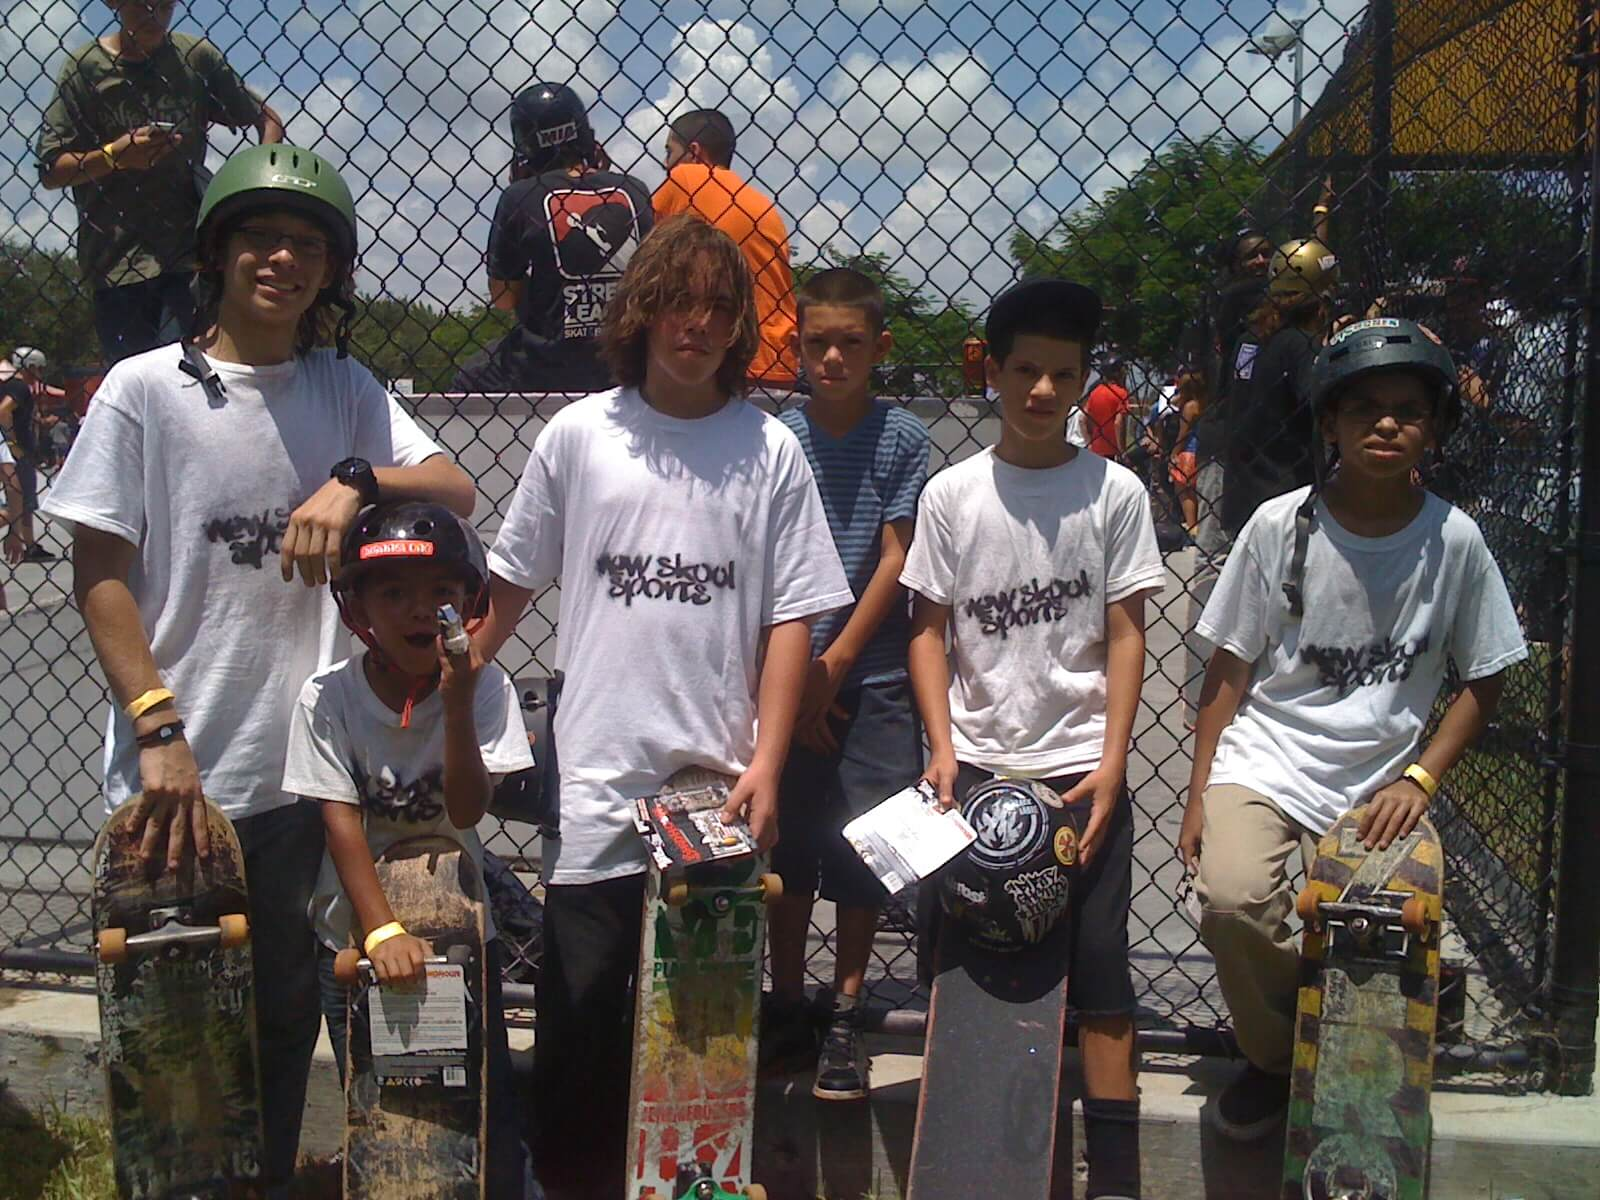 New Skool Skateboarding Team, Jay-jay, Jose, Anthony, Juan